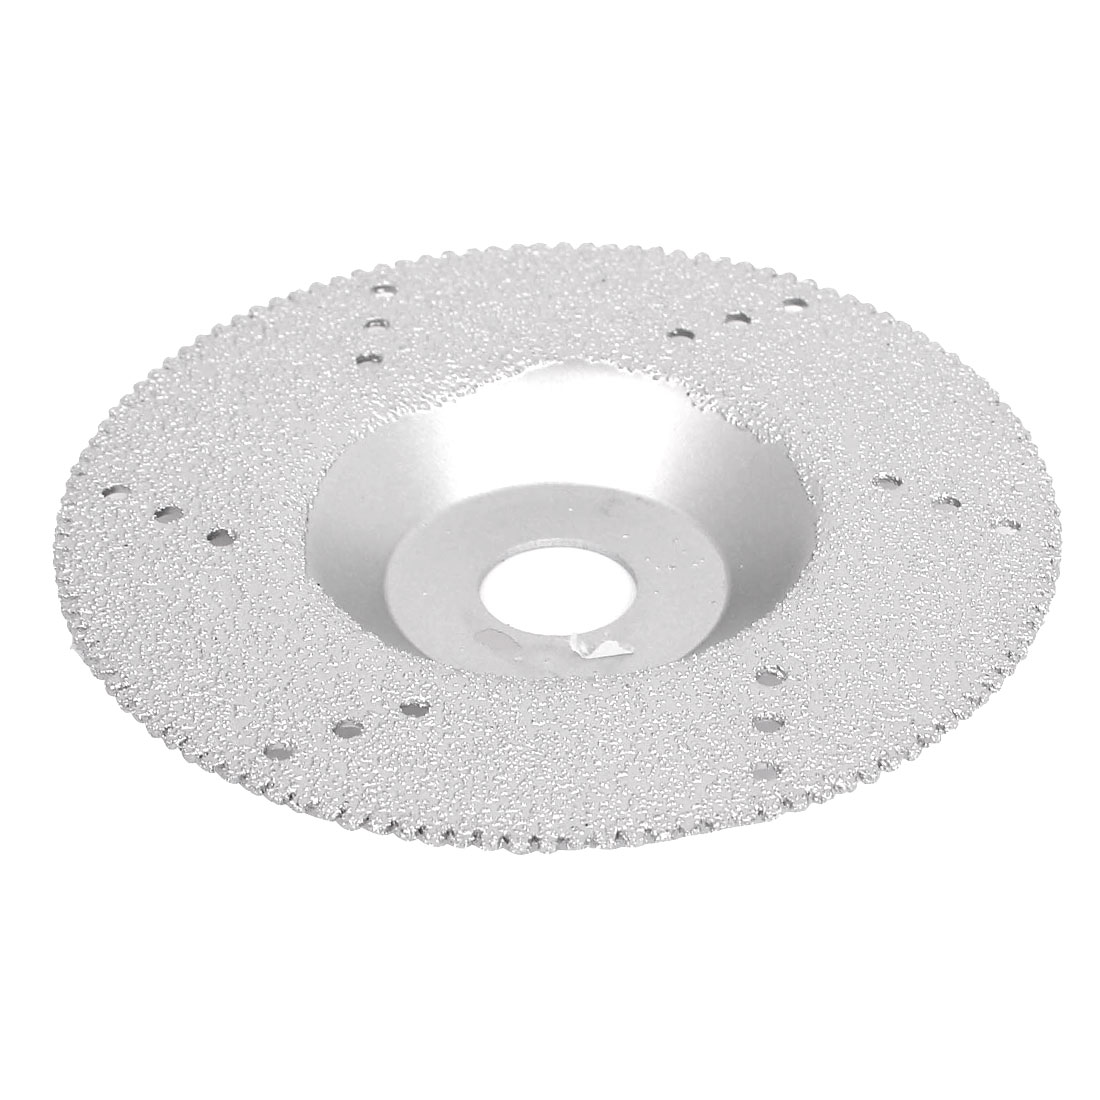 100mm x 16mm Glass Tile Ceramic Diamond Cup Polishing Grinding Wheel Disc